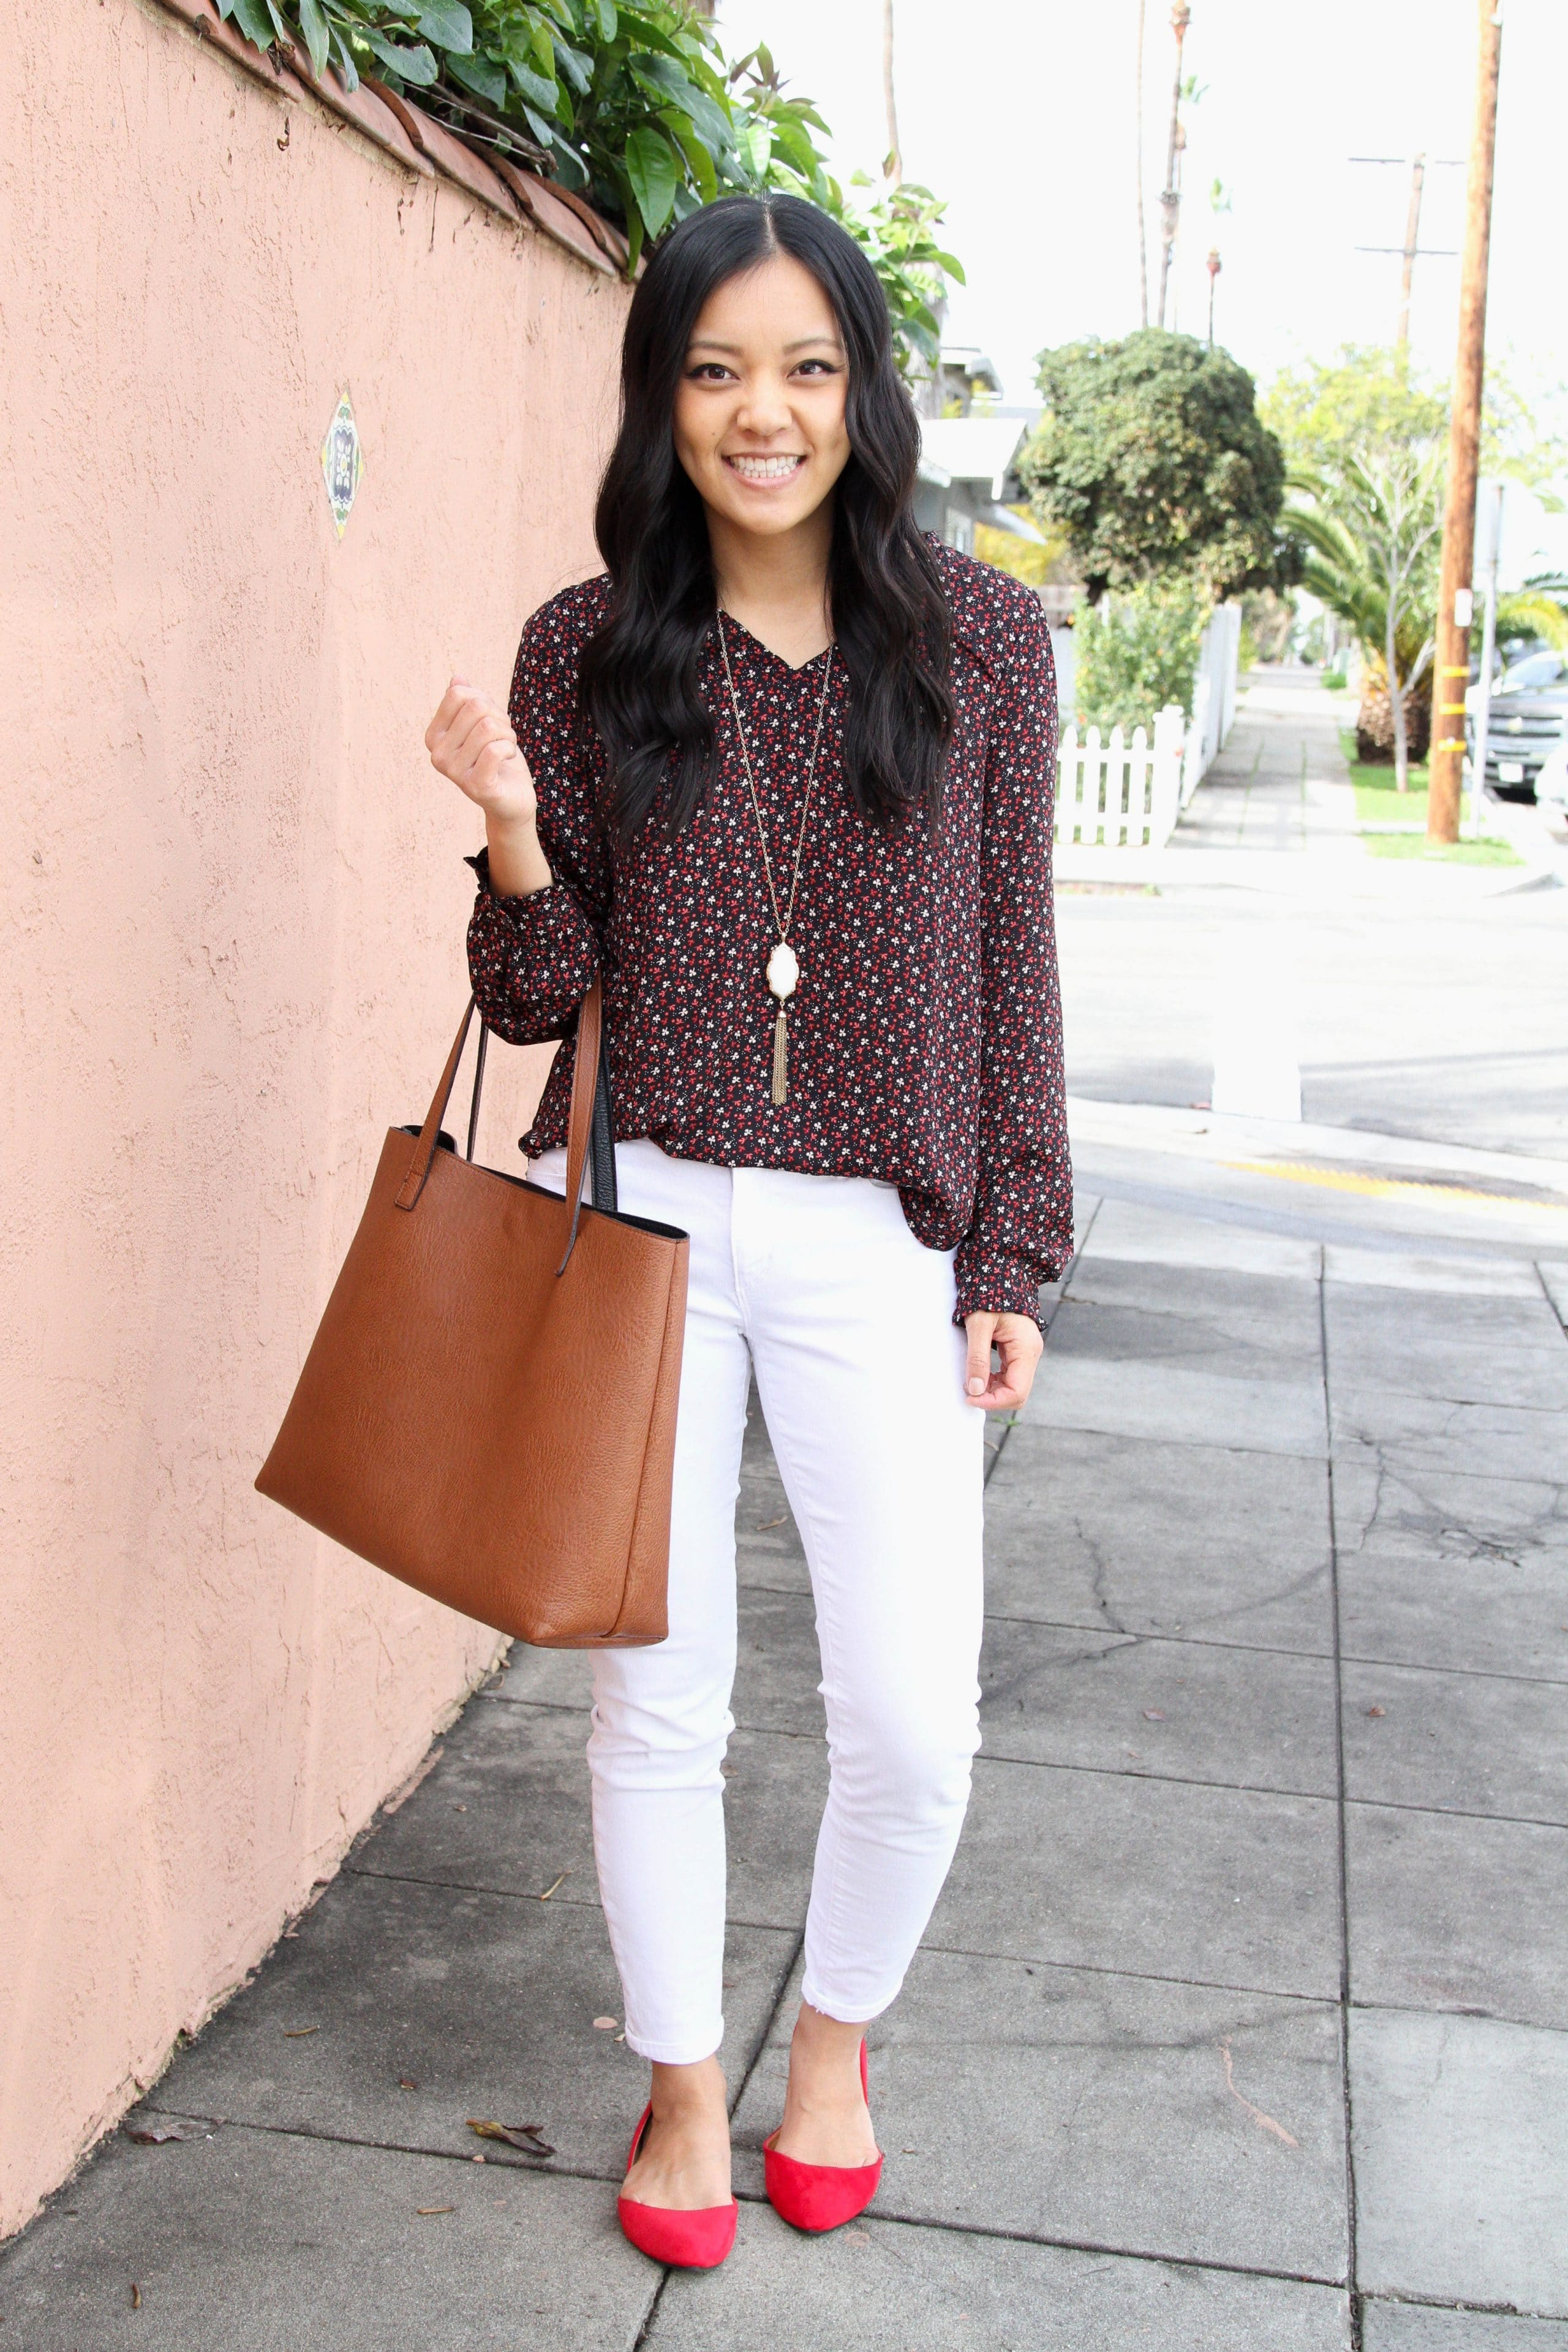 Floral Blouse + White Jeans + Tote + Red Flats + White Pendant